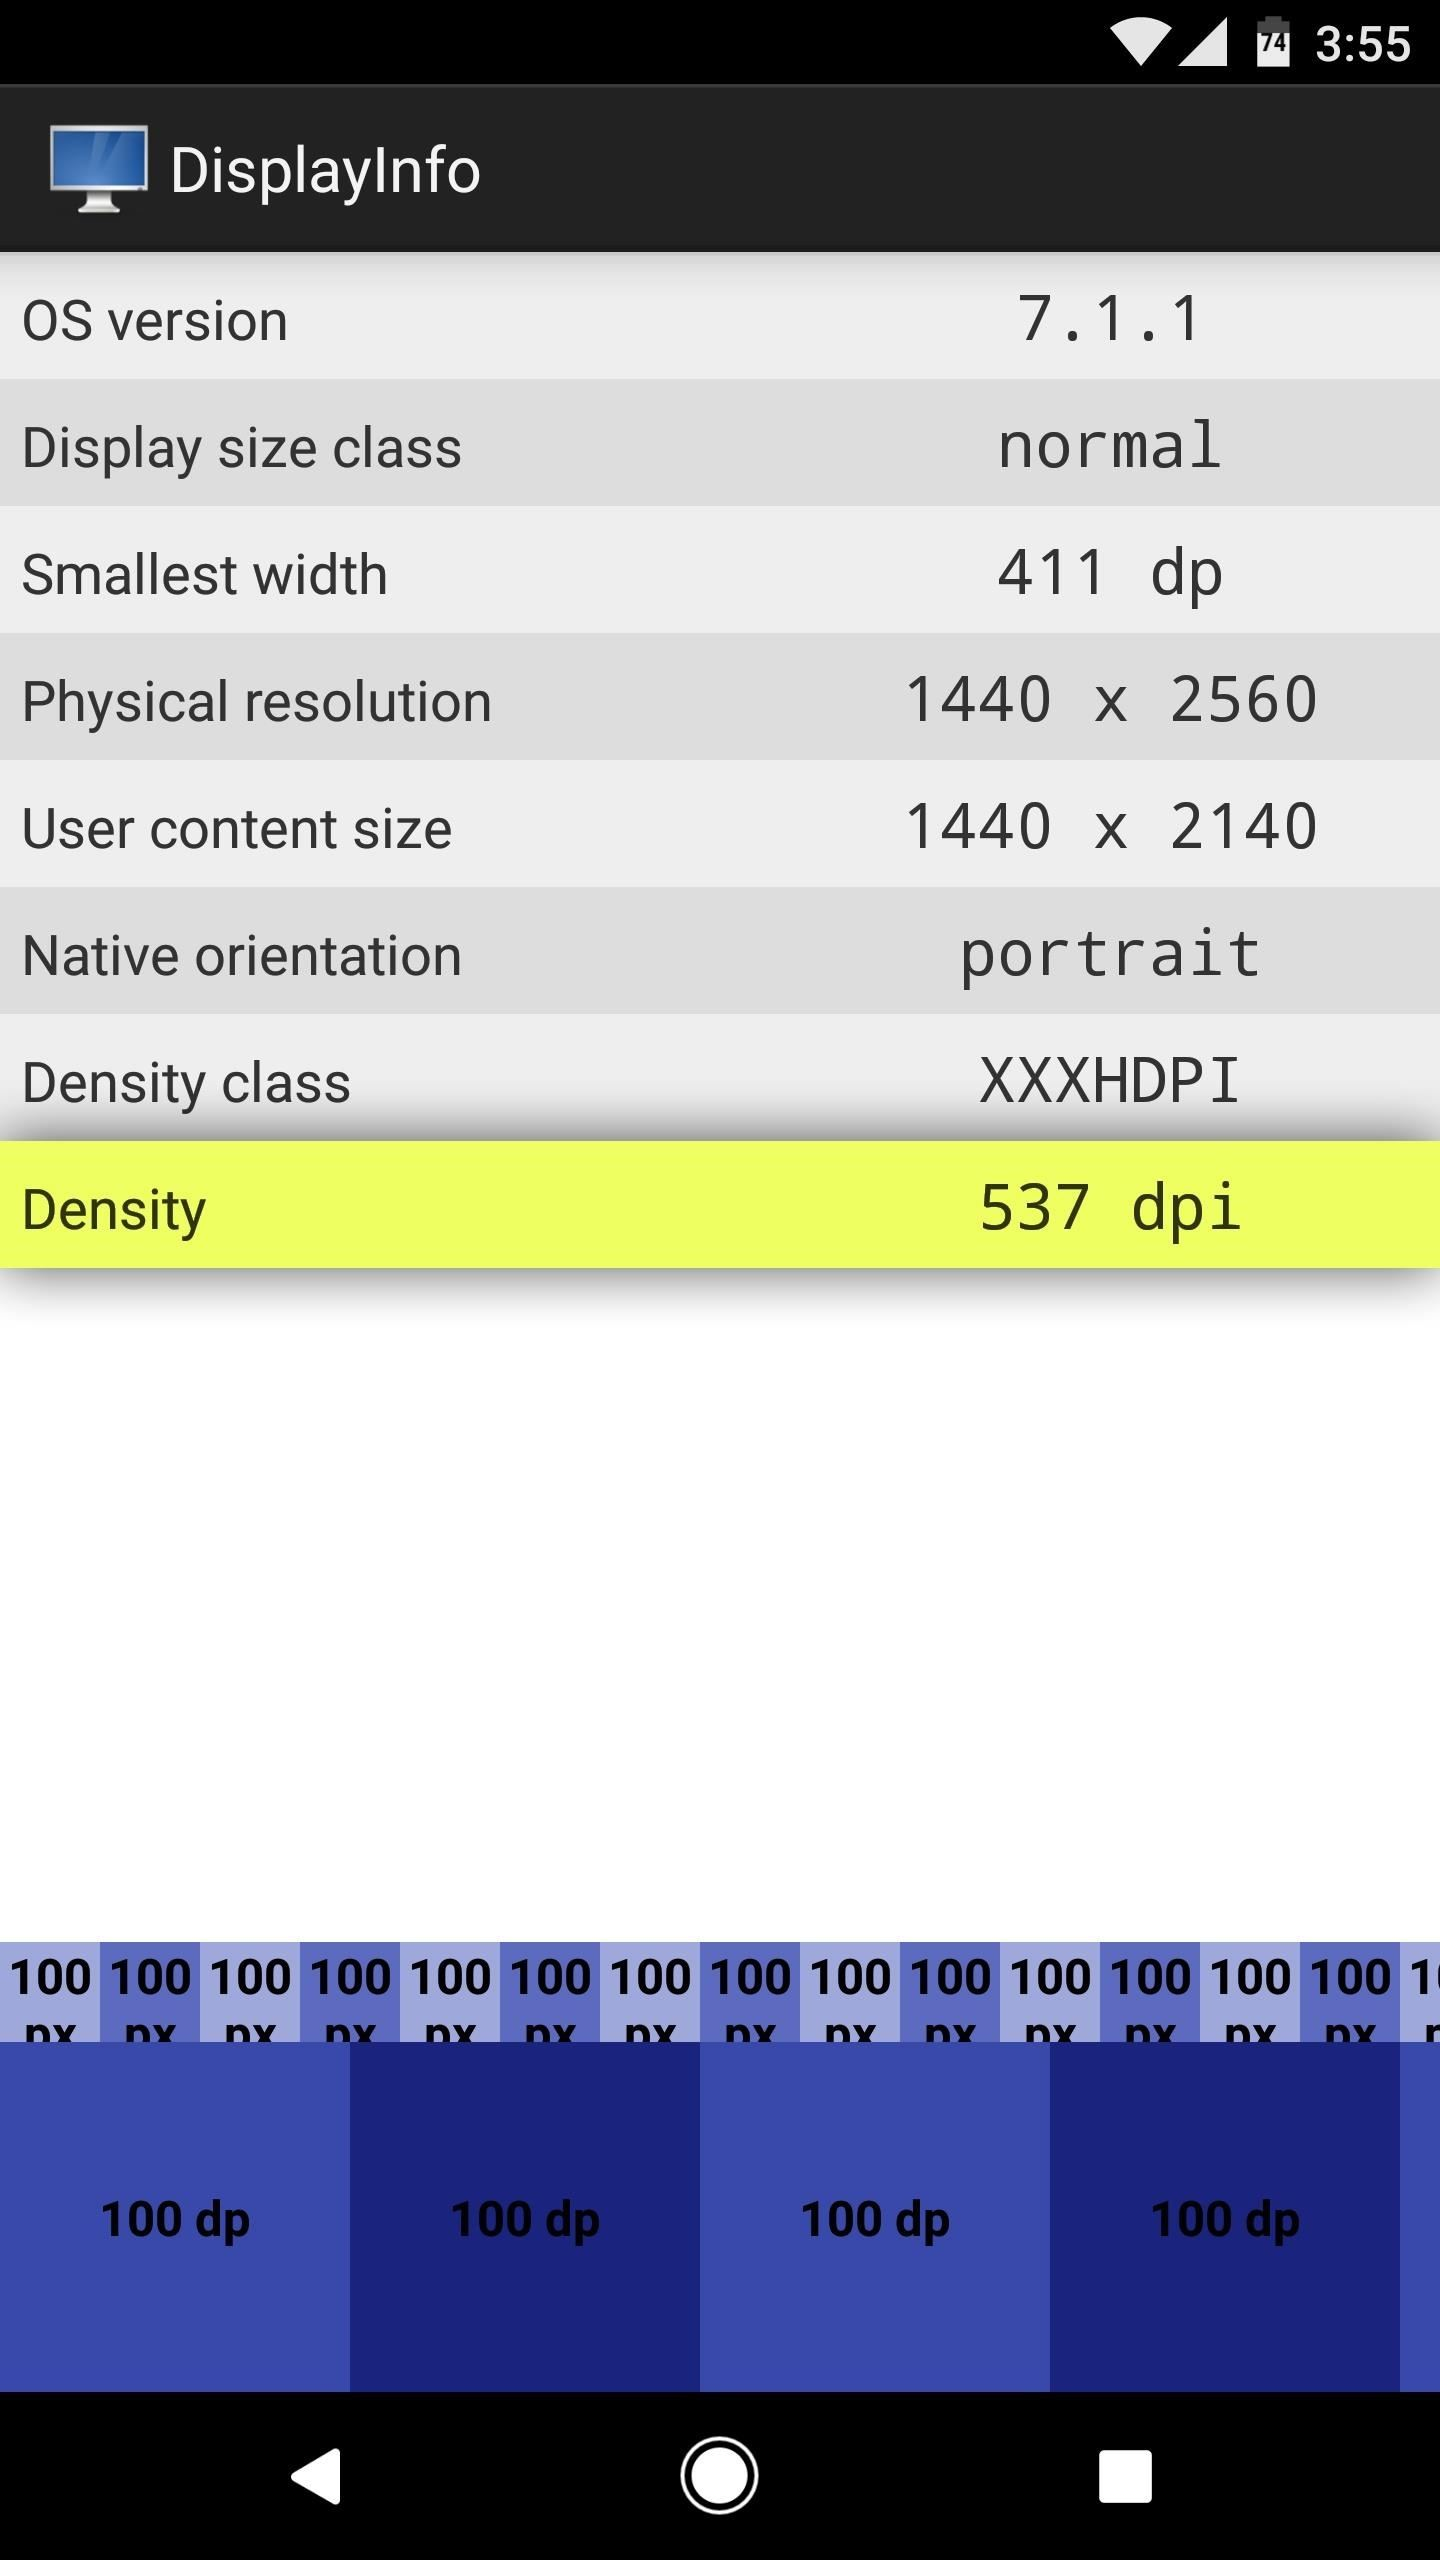 Android Basics: How to Find Your Phone's Screen Density Value (320 DPI, 480 DPI, 640 DPI, Etc.)